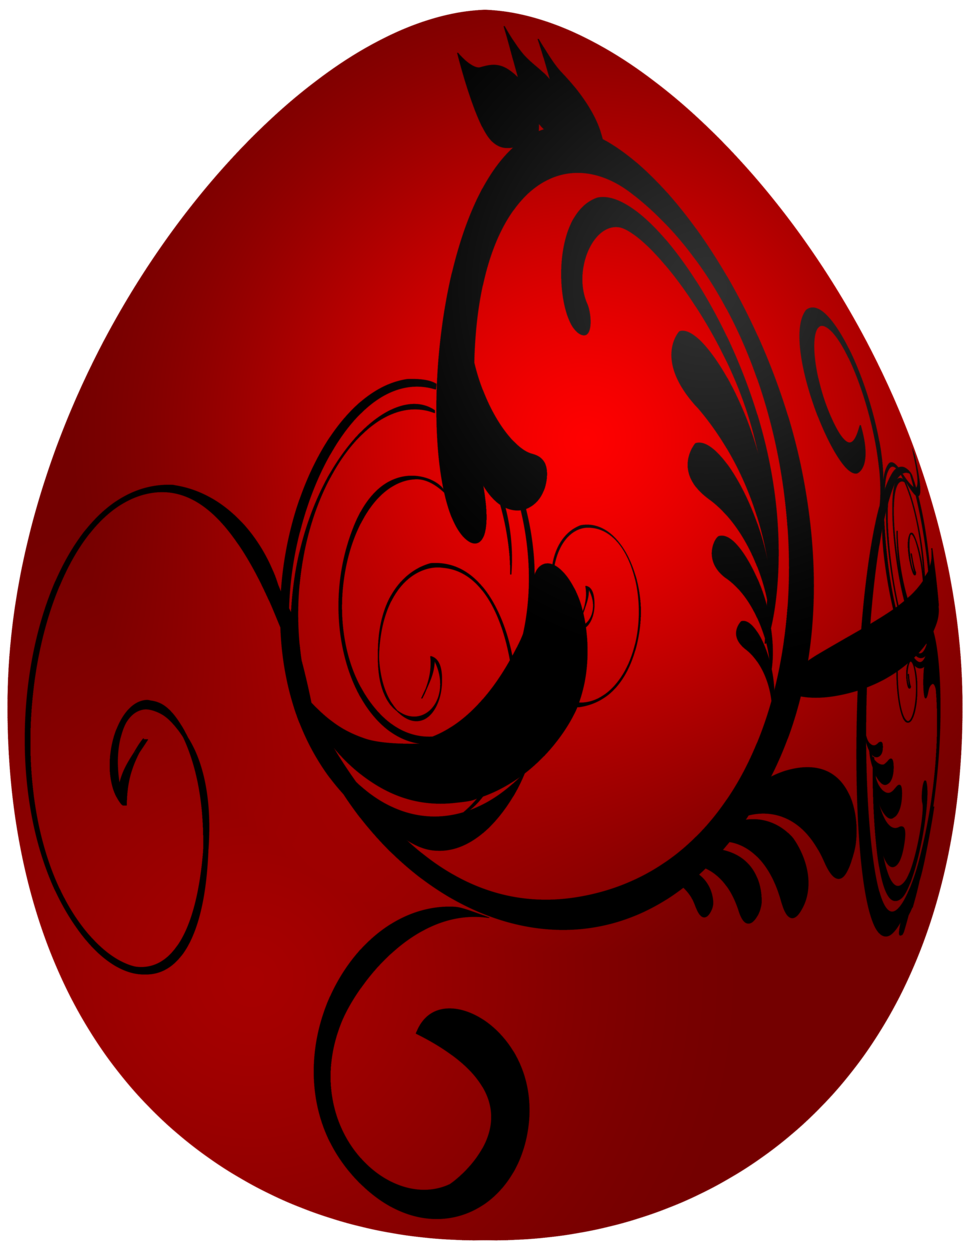 Easter Red Decorative Egg PNG Clip Art